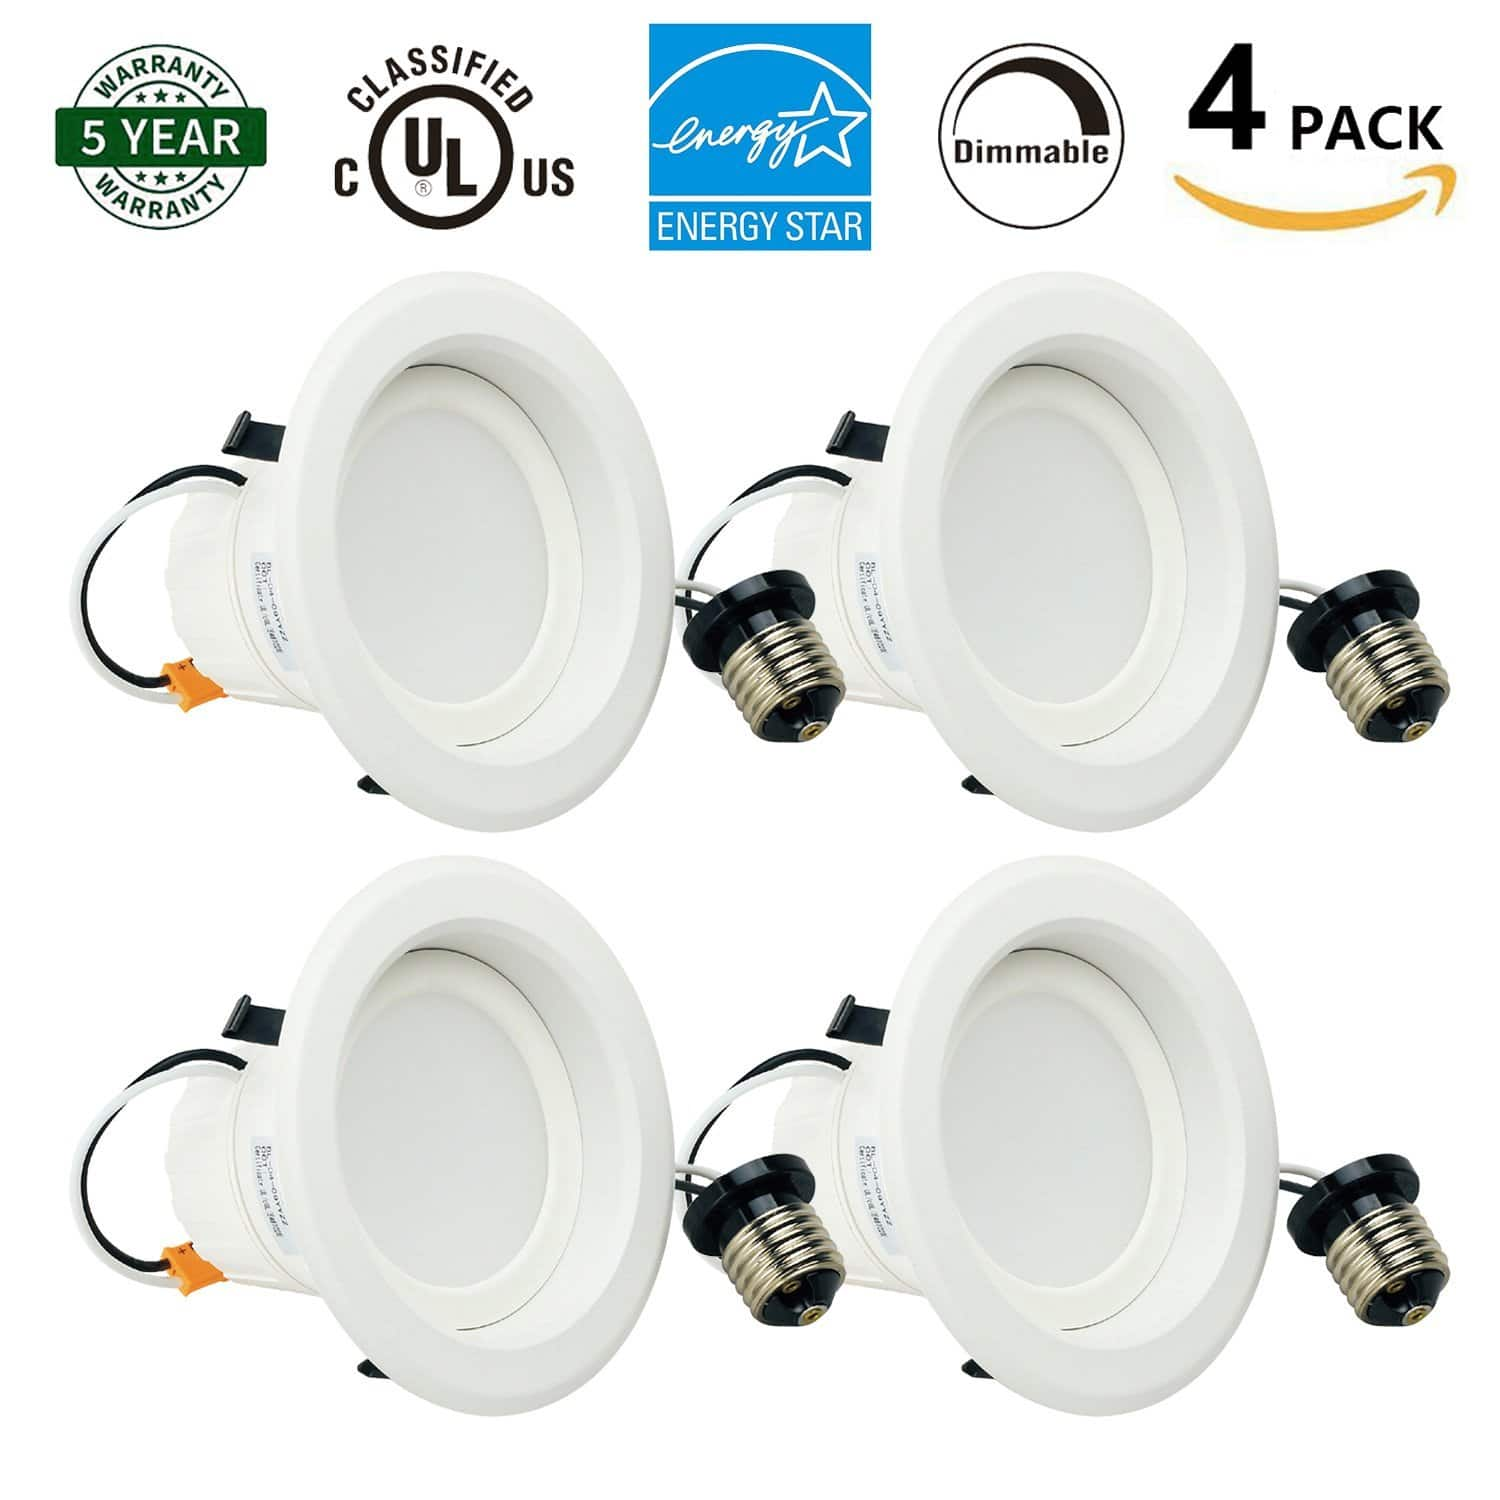 4-Pack 4 Inch Round Led Recessed Dimmable LED Retrofit Downlight 720 Lumen 3000K or 4000K  $32.29 Shipped with Prime or FSSS